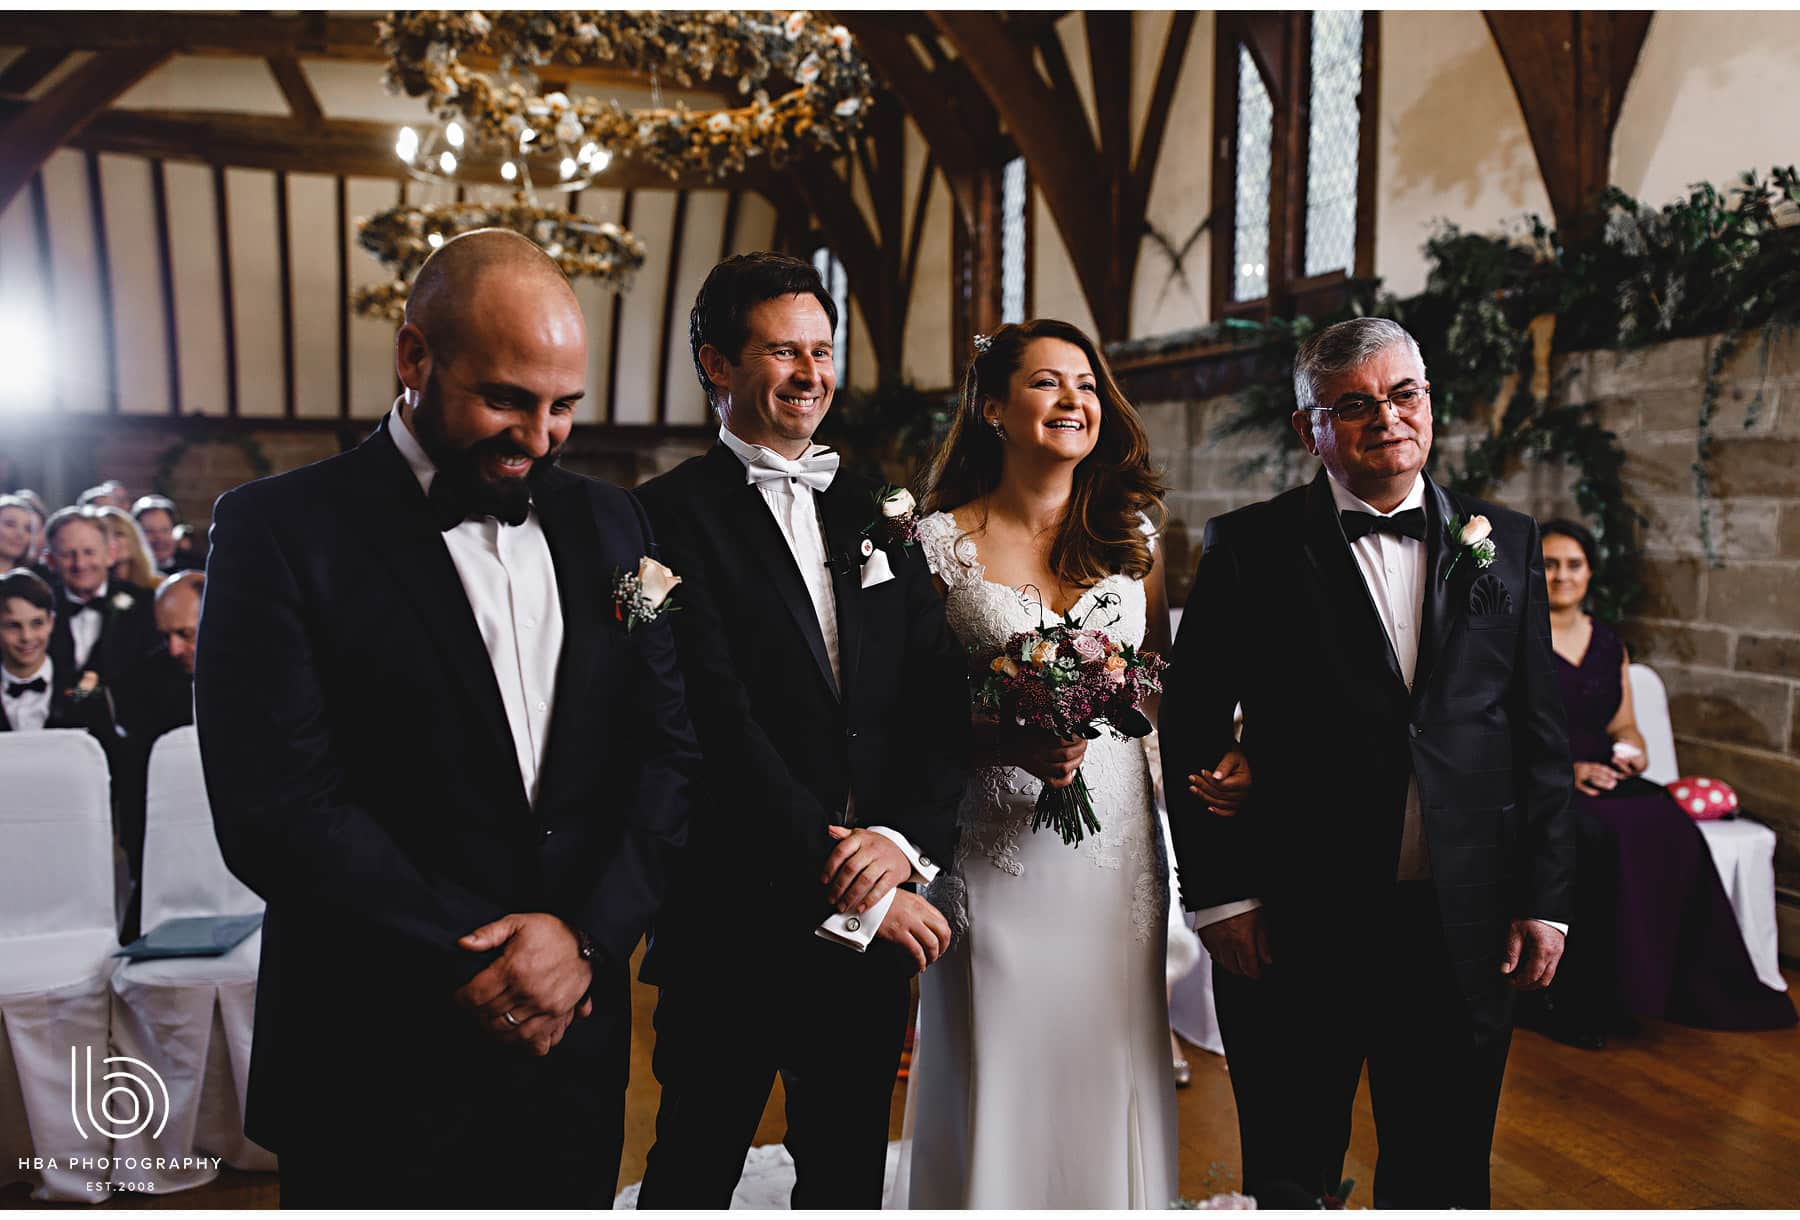 the bride, groom, father and best man